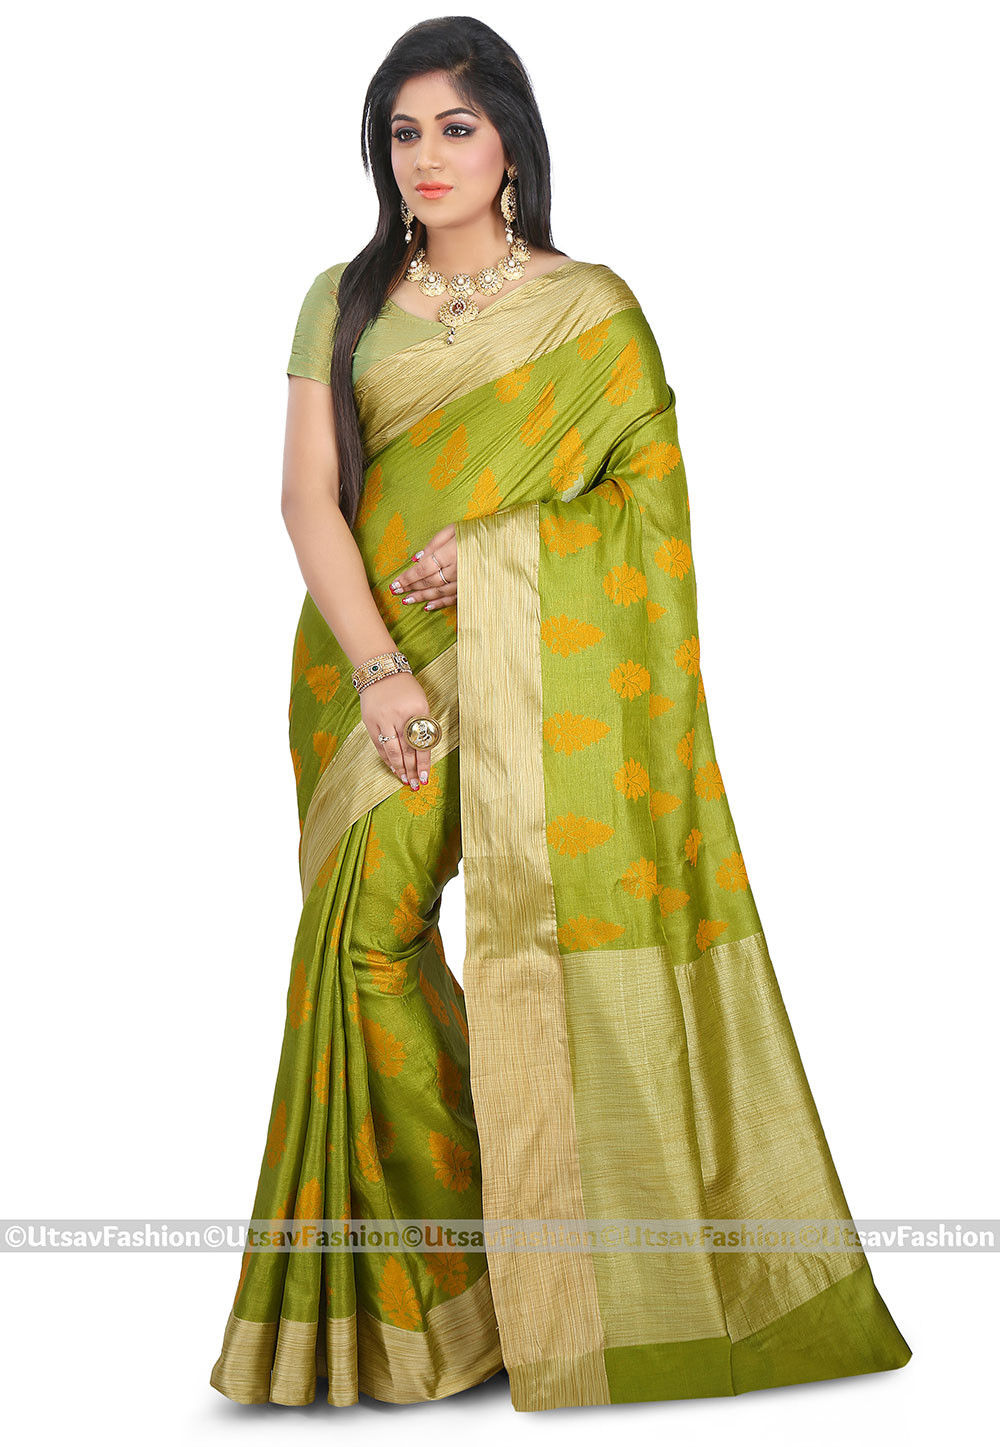 Woven Pure Tussar Silk Saree in Light Olive Green